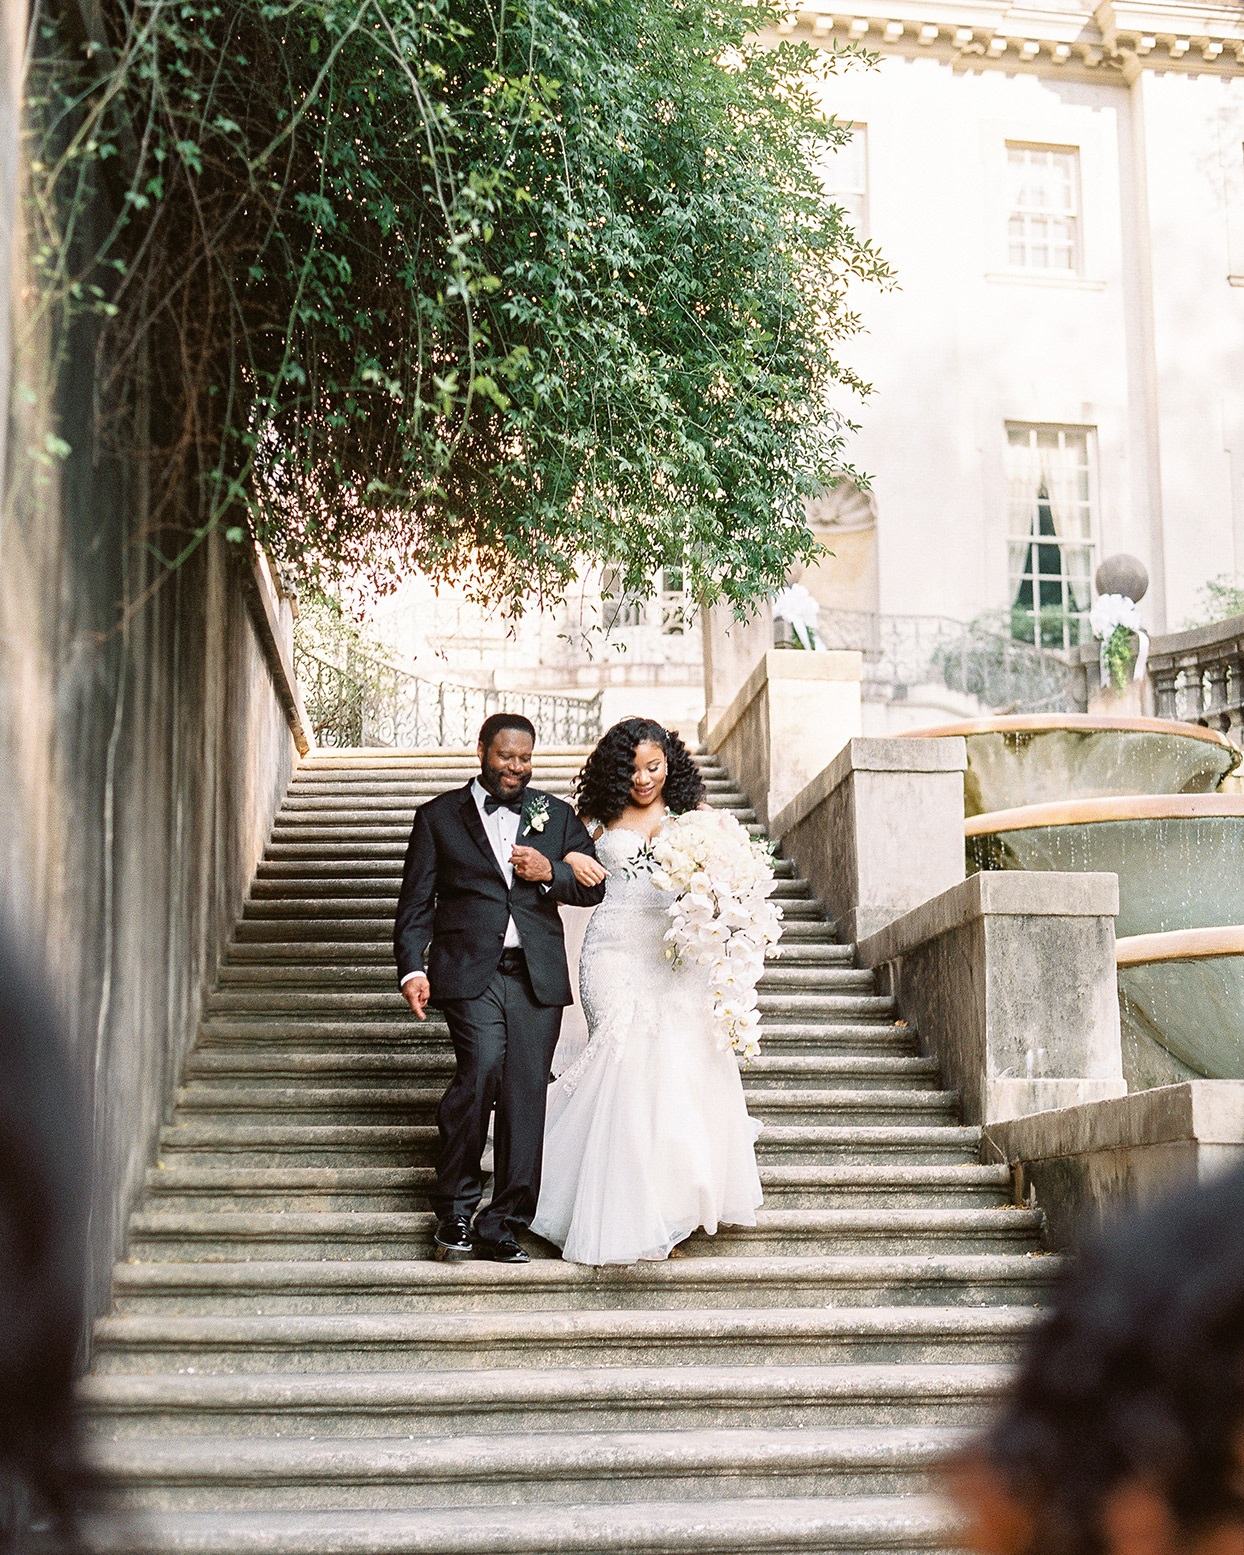 amelia justing wedding processional bride and father walking down stone steps